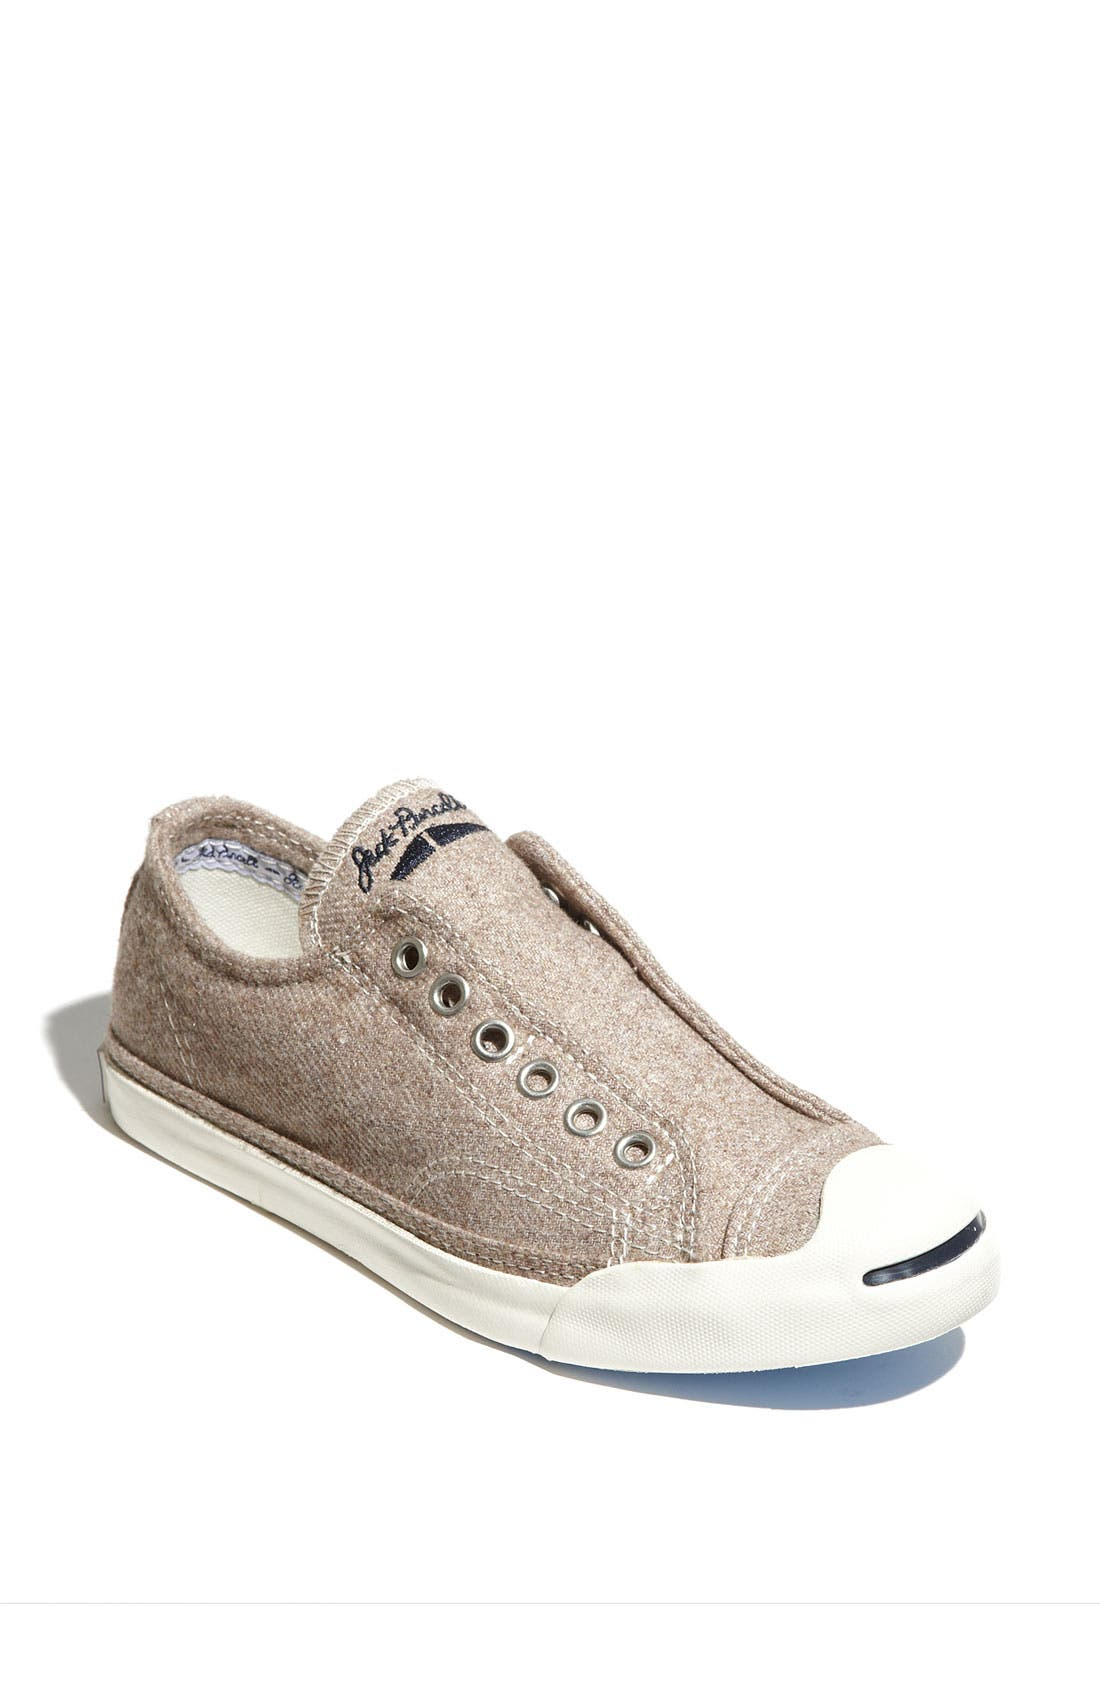 Main Image - Converse 'Jack Purcell' Slip-On Sneaker